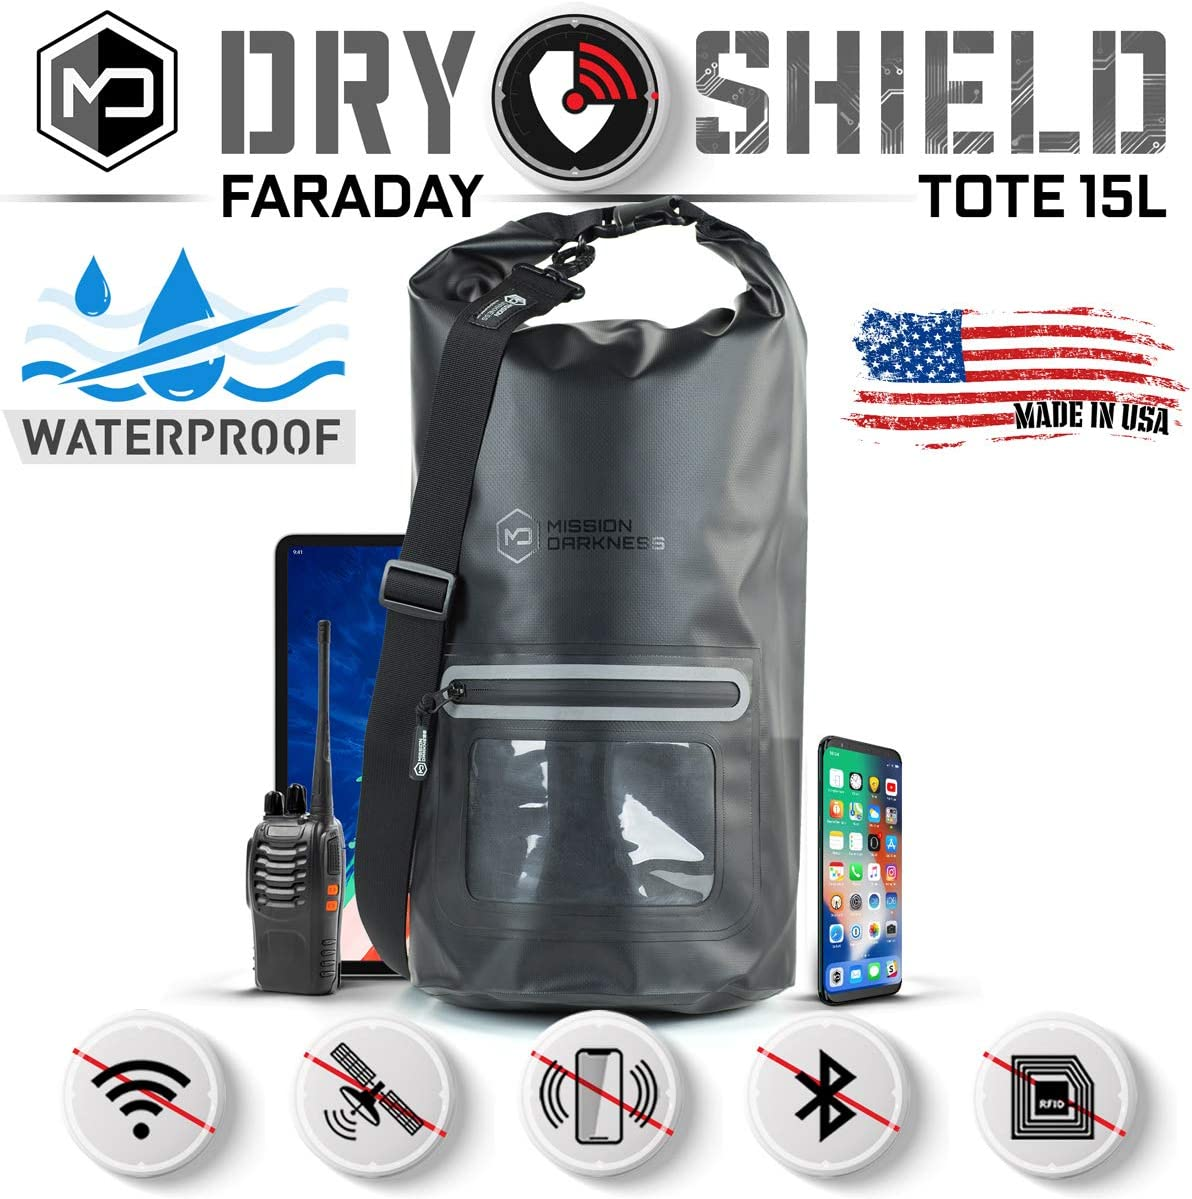 Mission Darkness Dry Shield Faraday Tote 15L // Waterproof Dry Bag for Electronic Device Security & Transport // Signal Blocking, Anti-Tracking, EMP Shield, Data Privacy for Phones, Tablets, Laptops